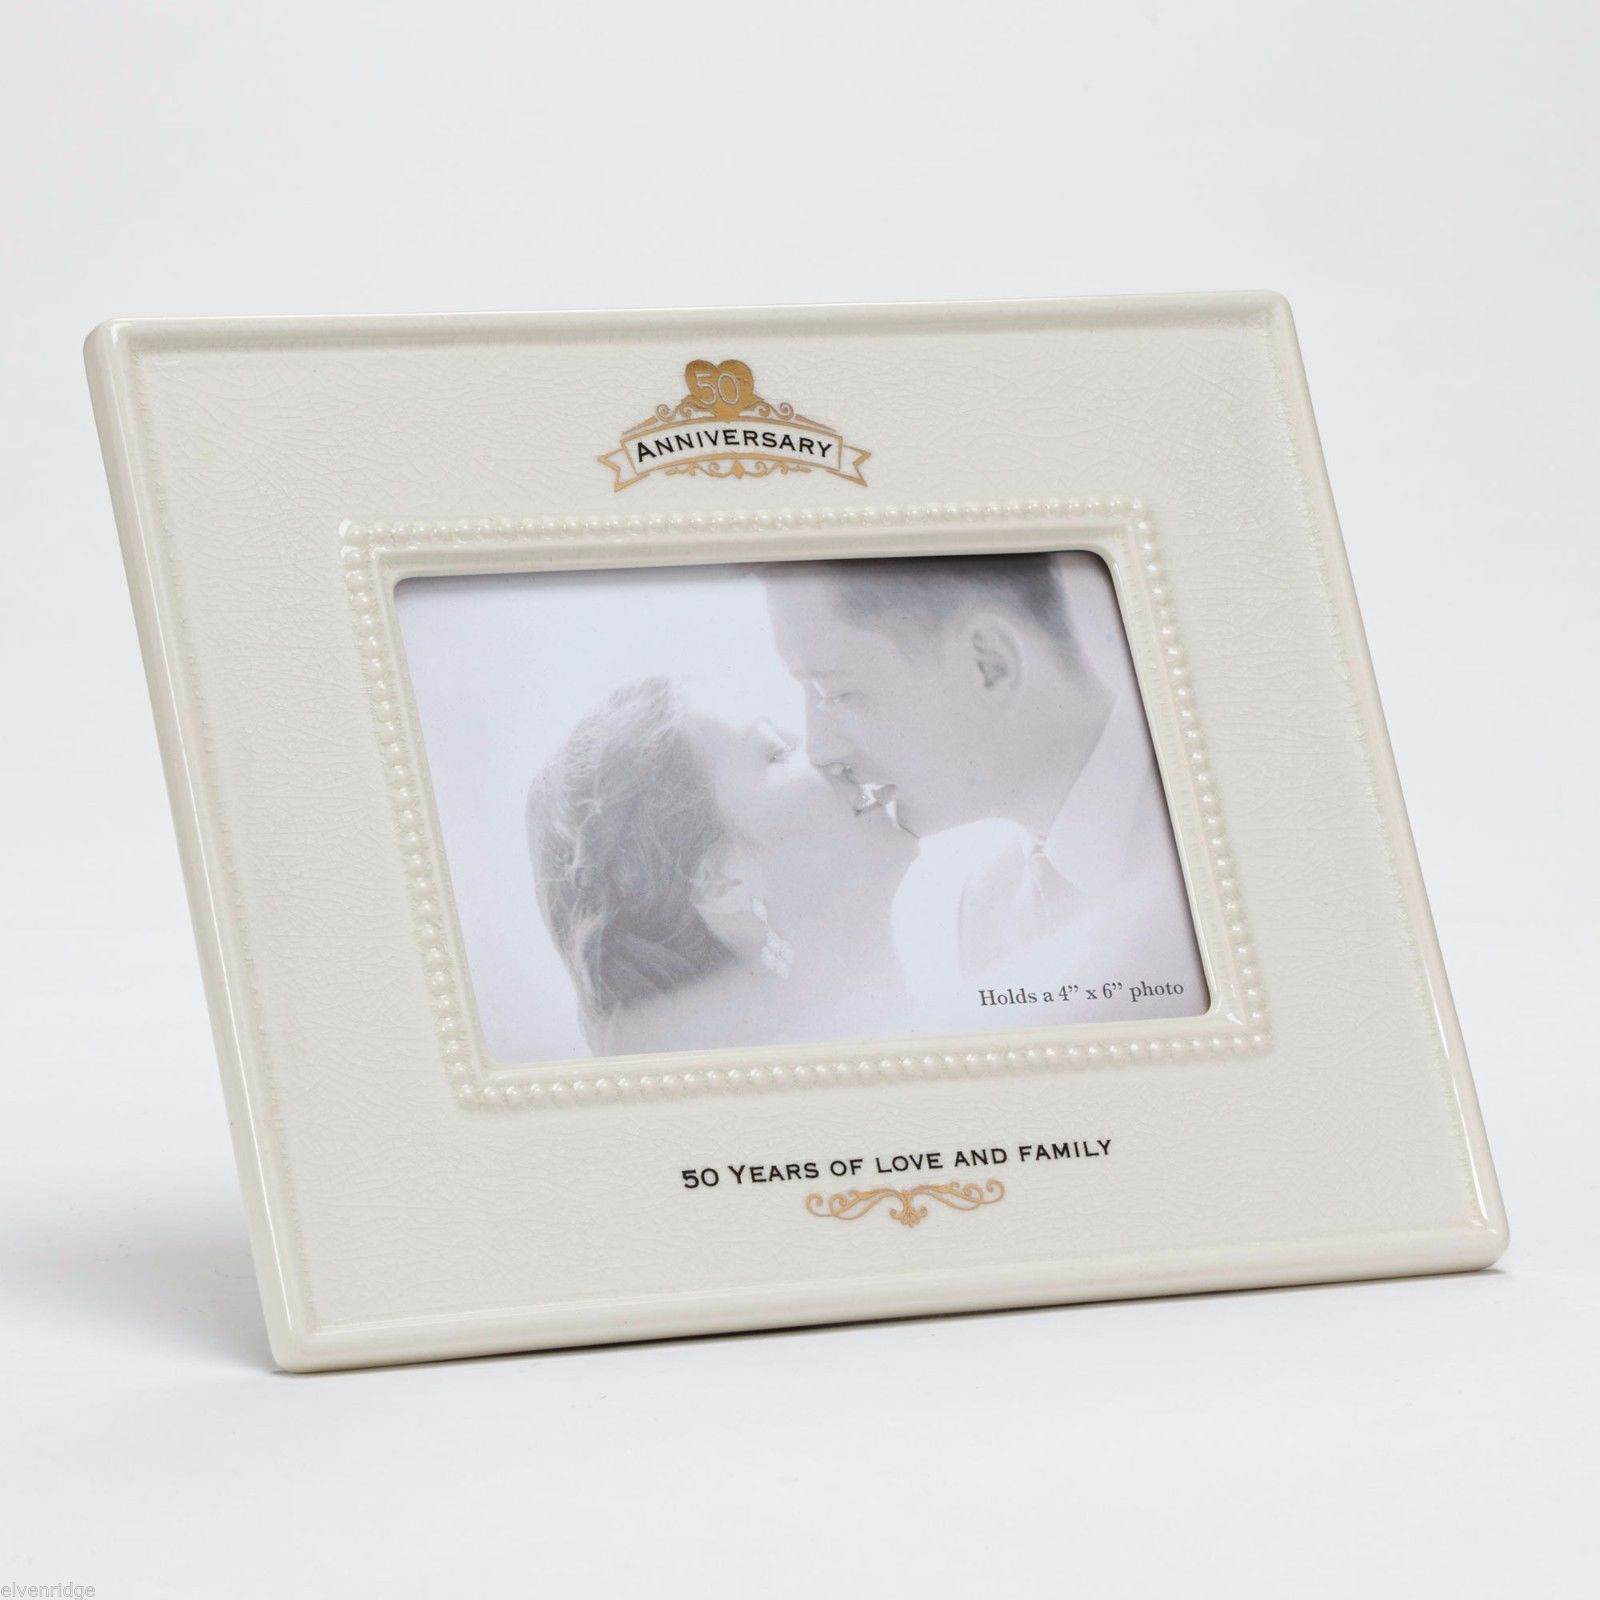 50th Anniversary Ceramic Photo Frame 50 Years of Love and Family